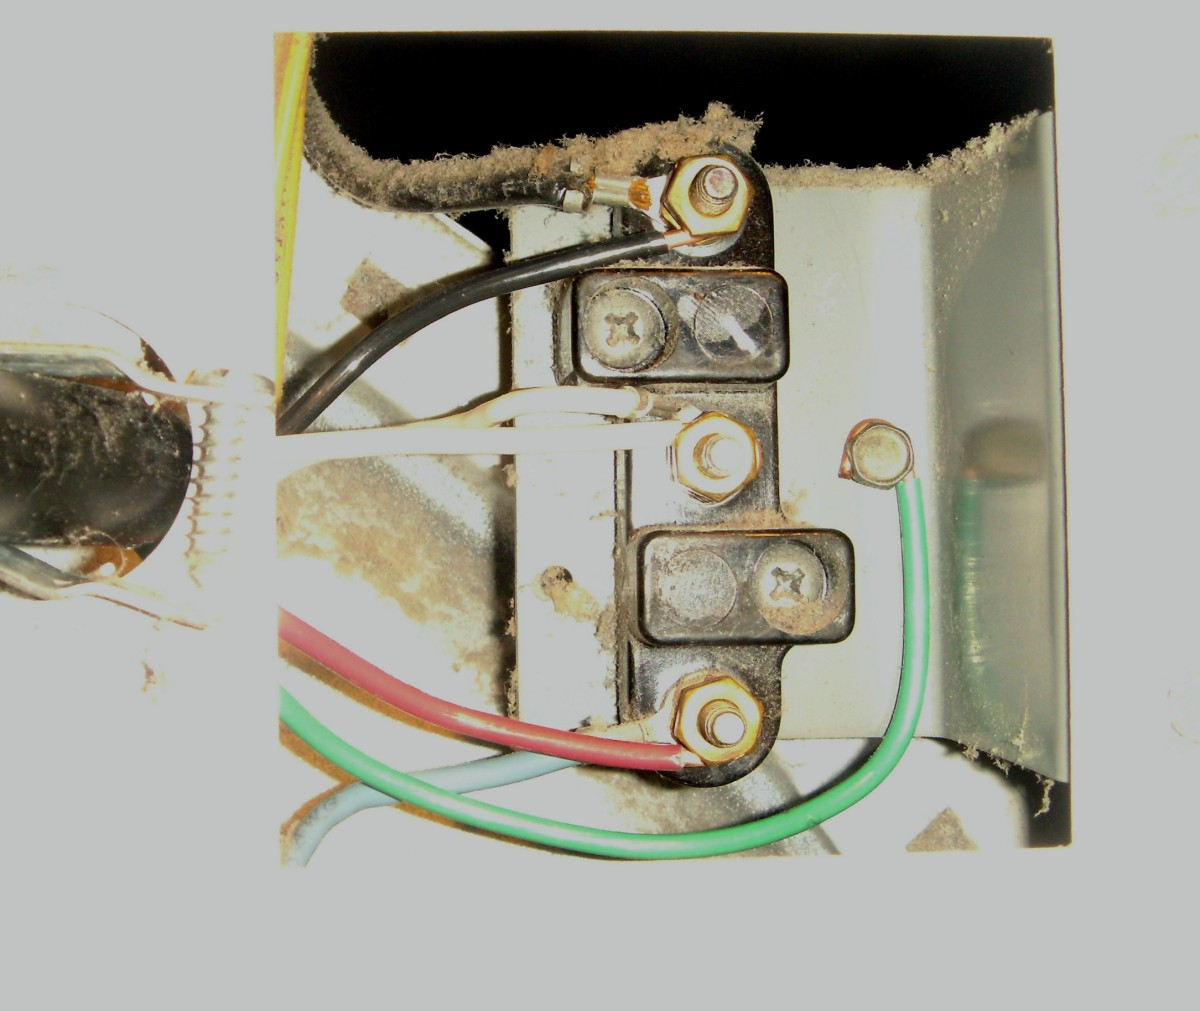 The four-pronged cord has been loosened from the dryer wall and is ready to be disconnected from the terminals.  Pay particular attention to where the white and green wires go.